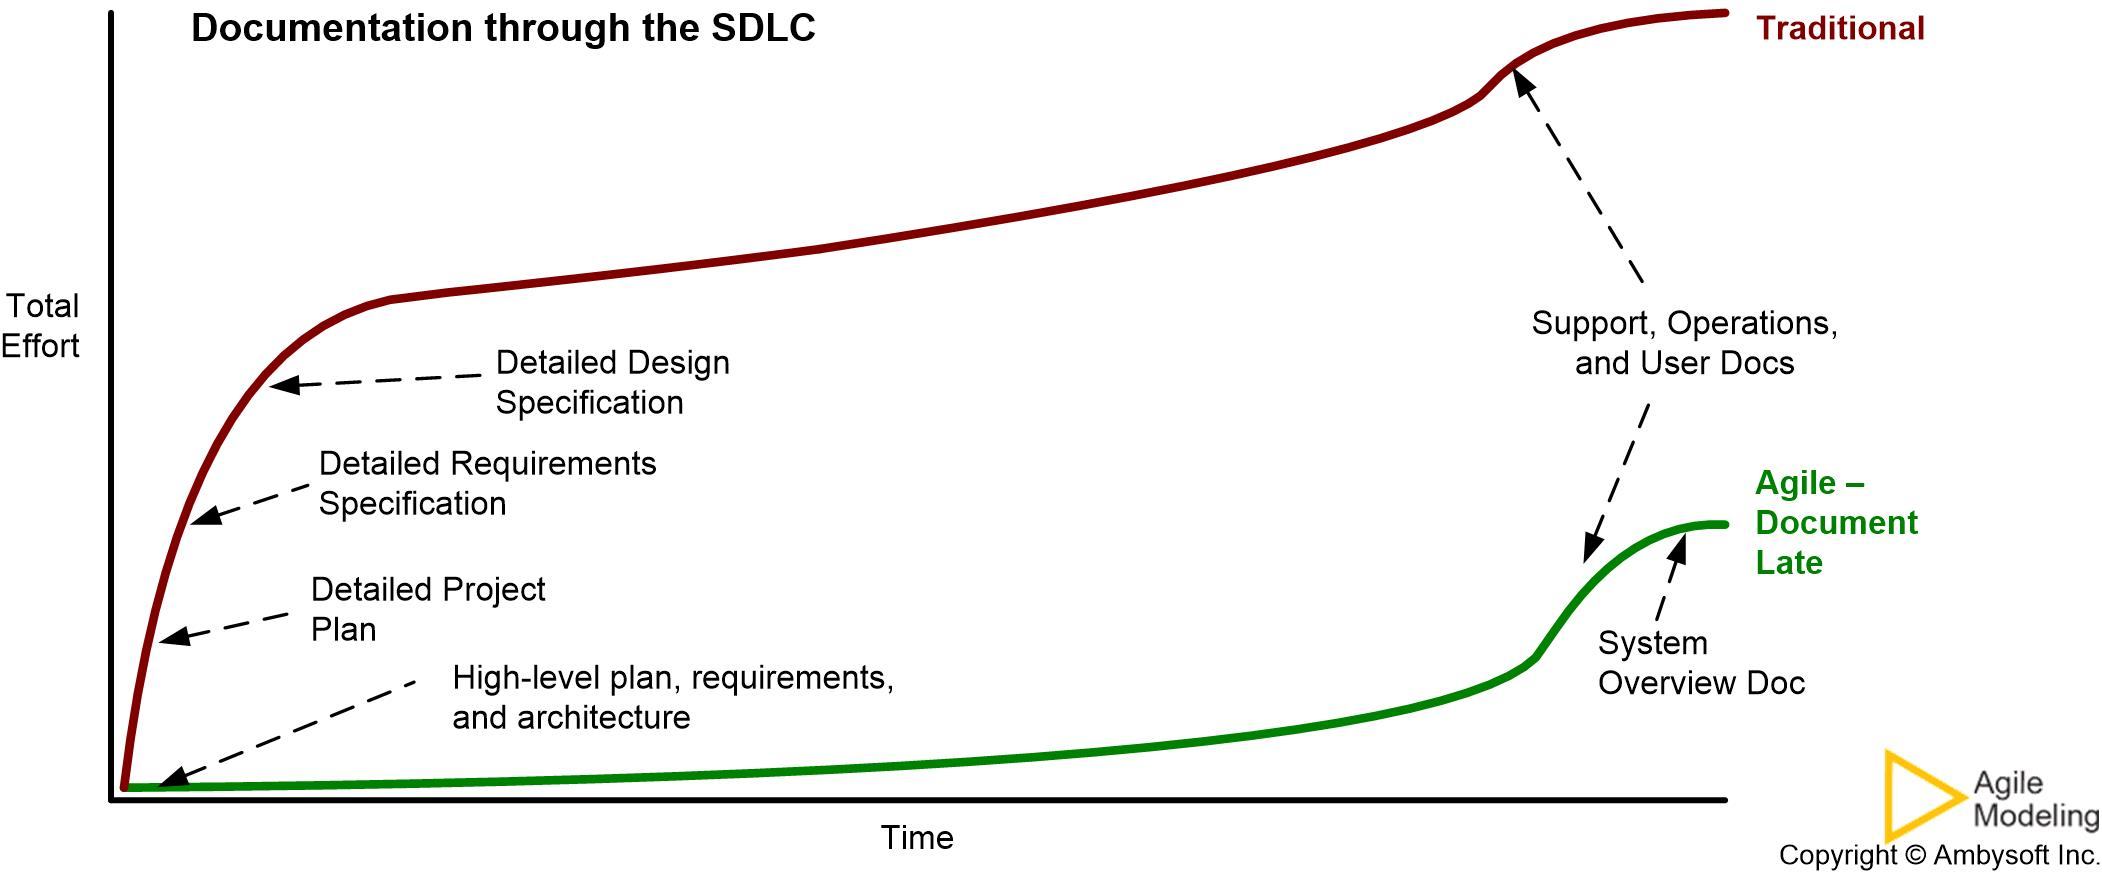 Agile Documentation - Document Late strategy